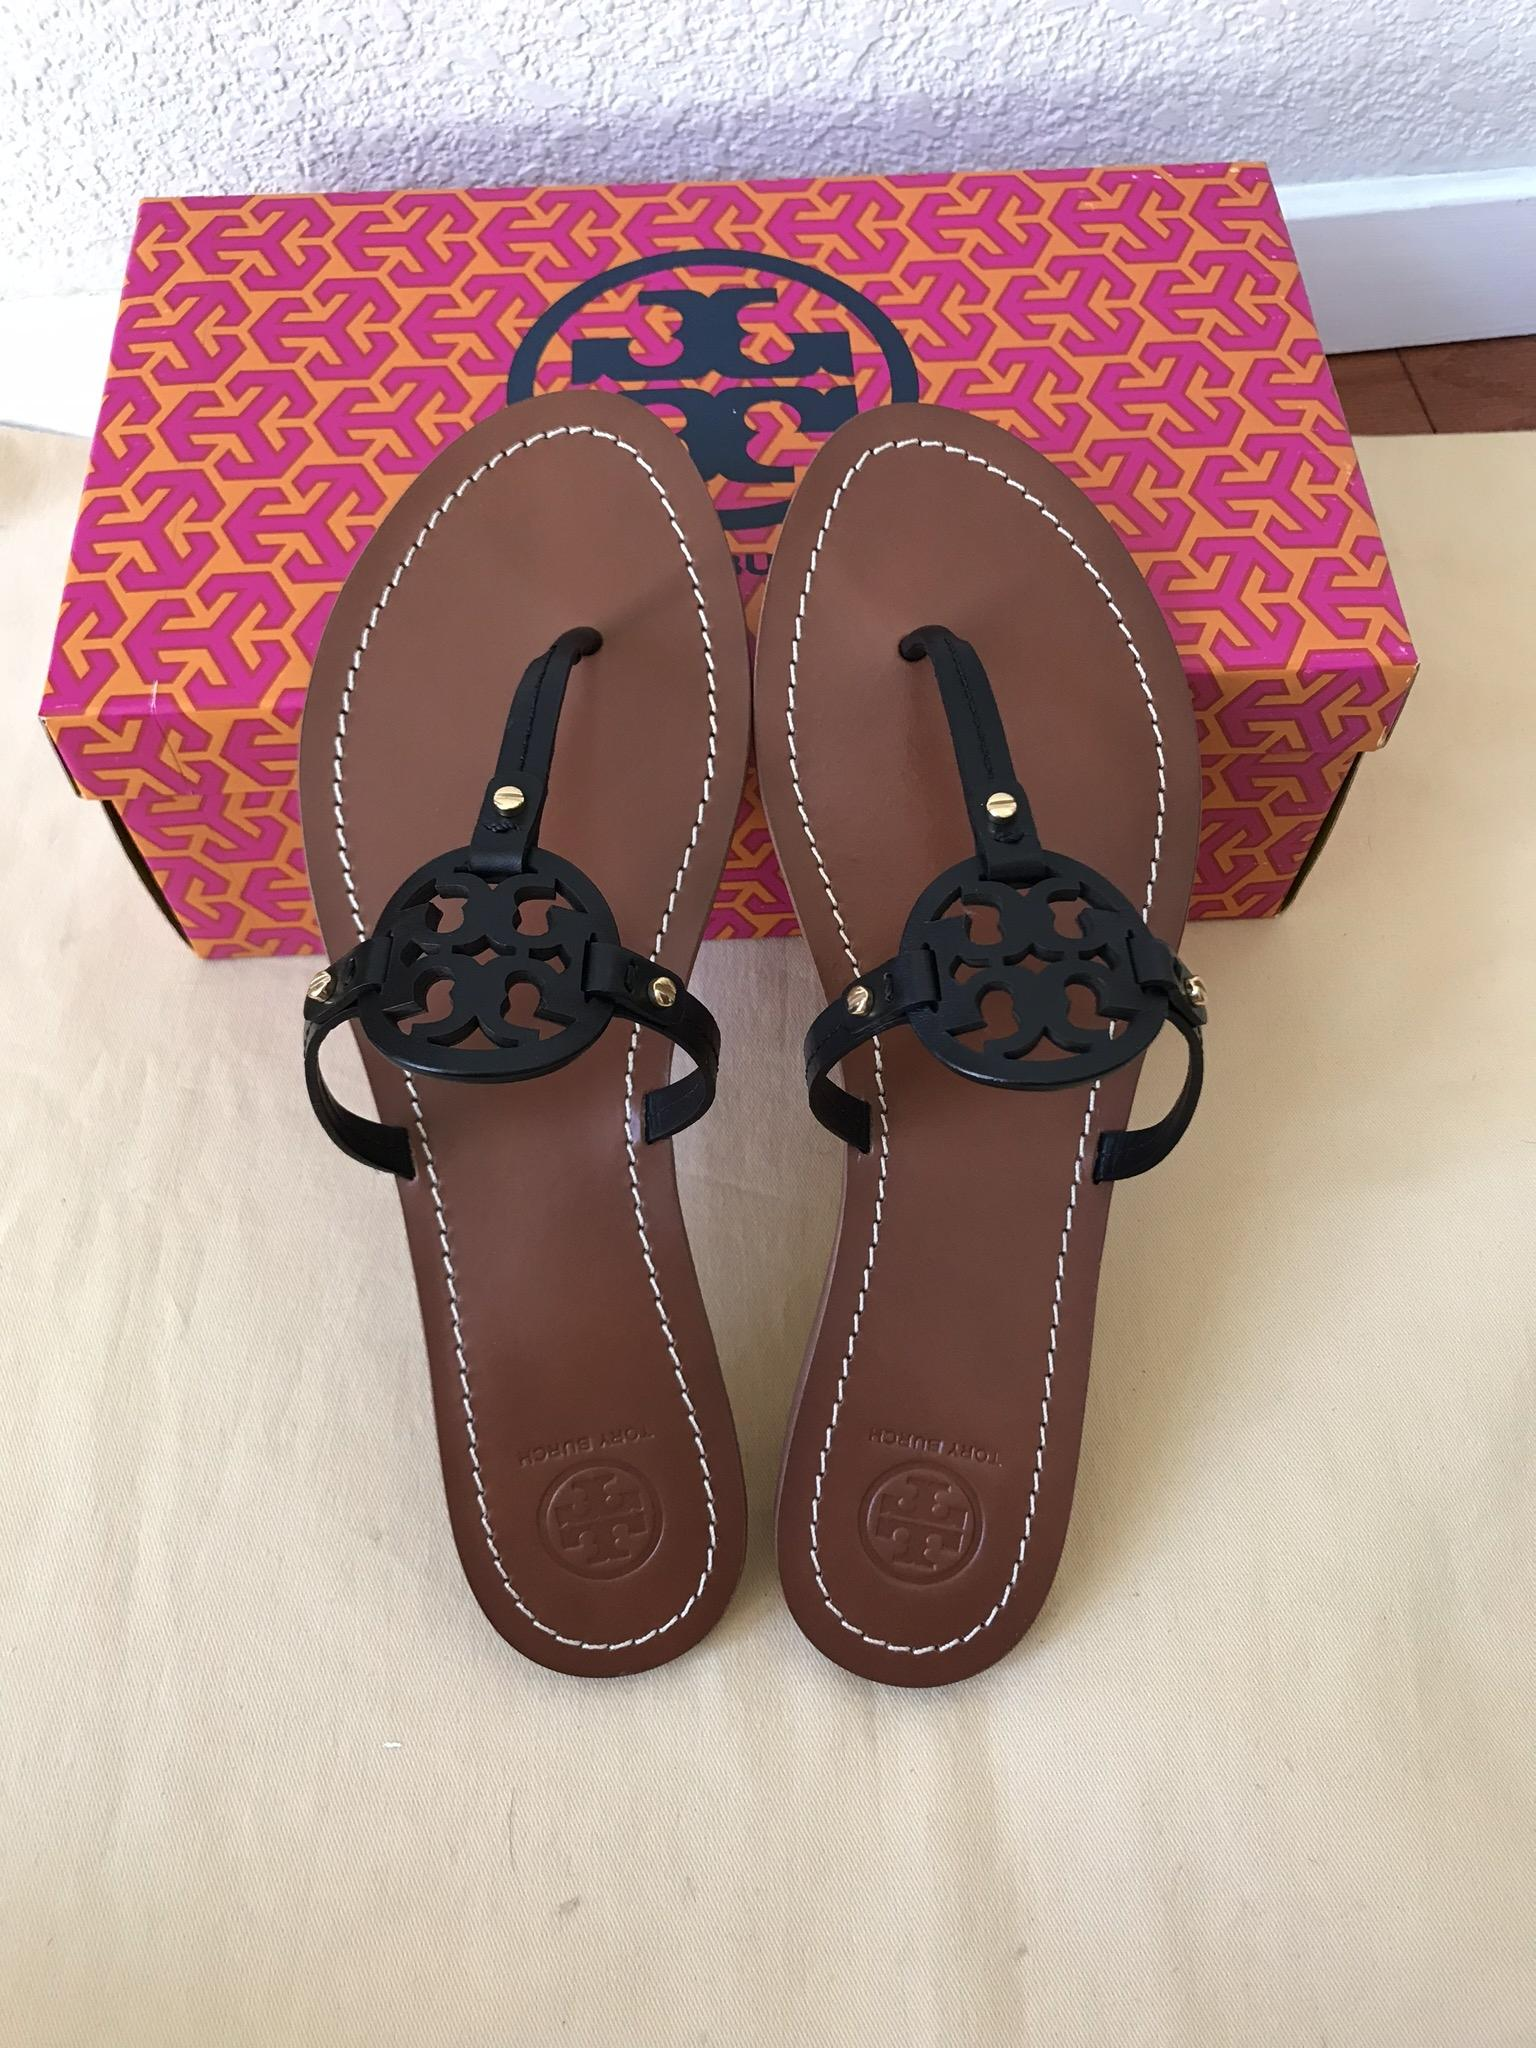 14fa86e77611 ... Tory Burch Black Mini Miller Flat Sandals Sandals Sandals Size US 9  Regular (M